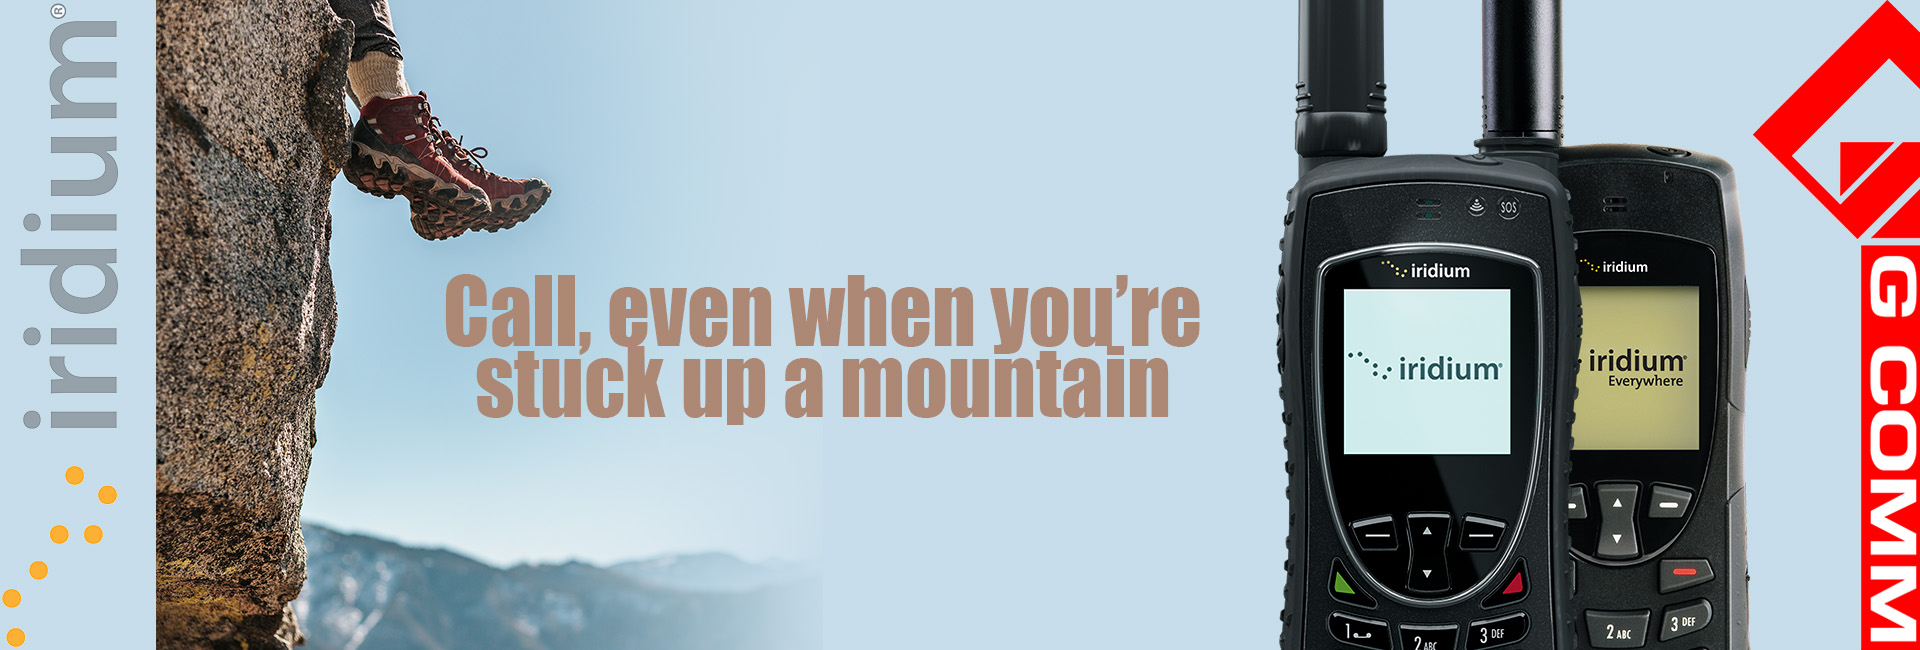 Call from anywhere - even up a mountain